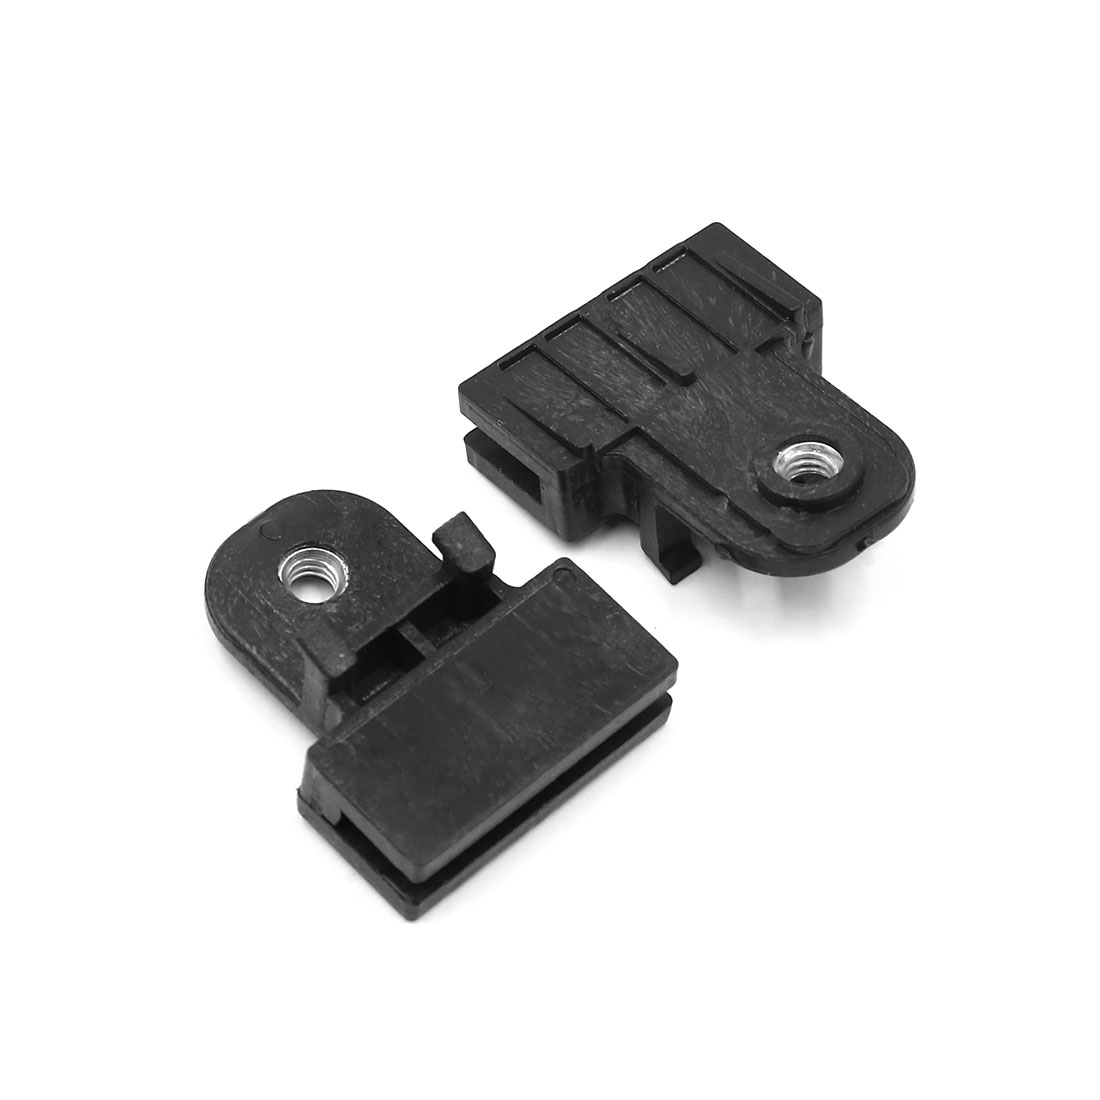 20Pcs Black Universal Window Glass Channel Support Holder Clips 40 x 5mm Slot